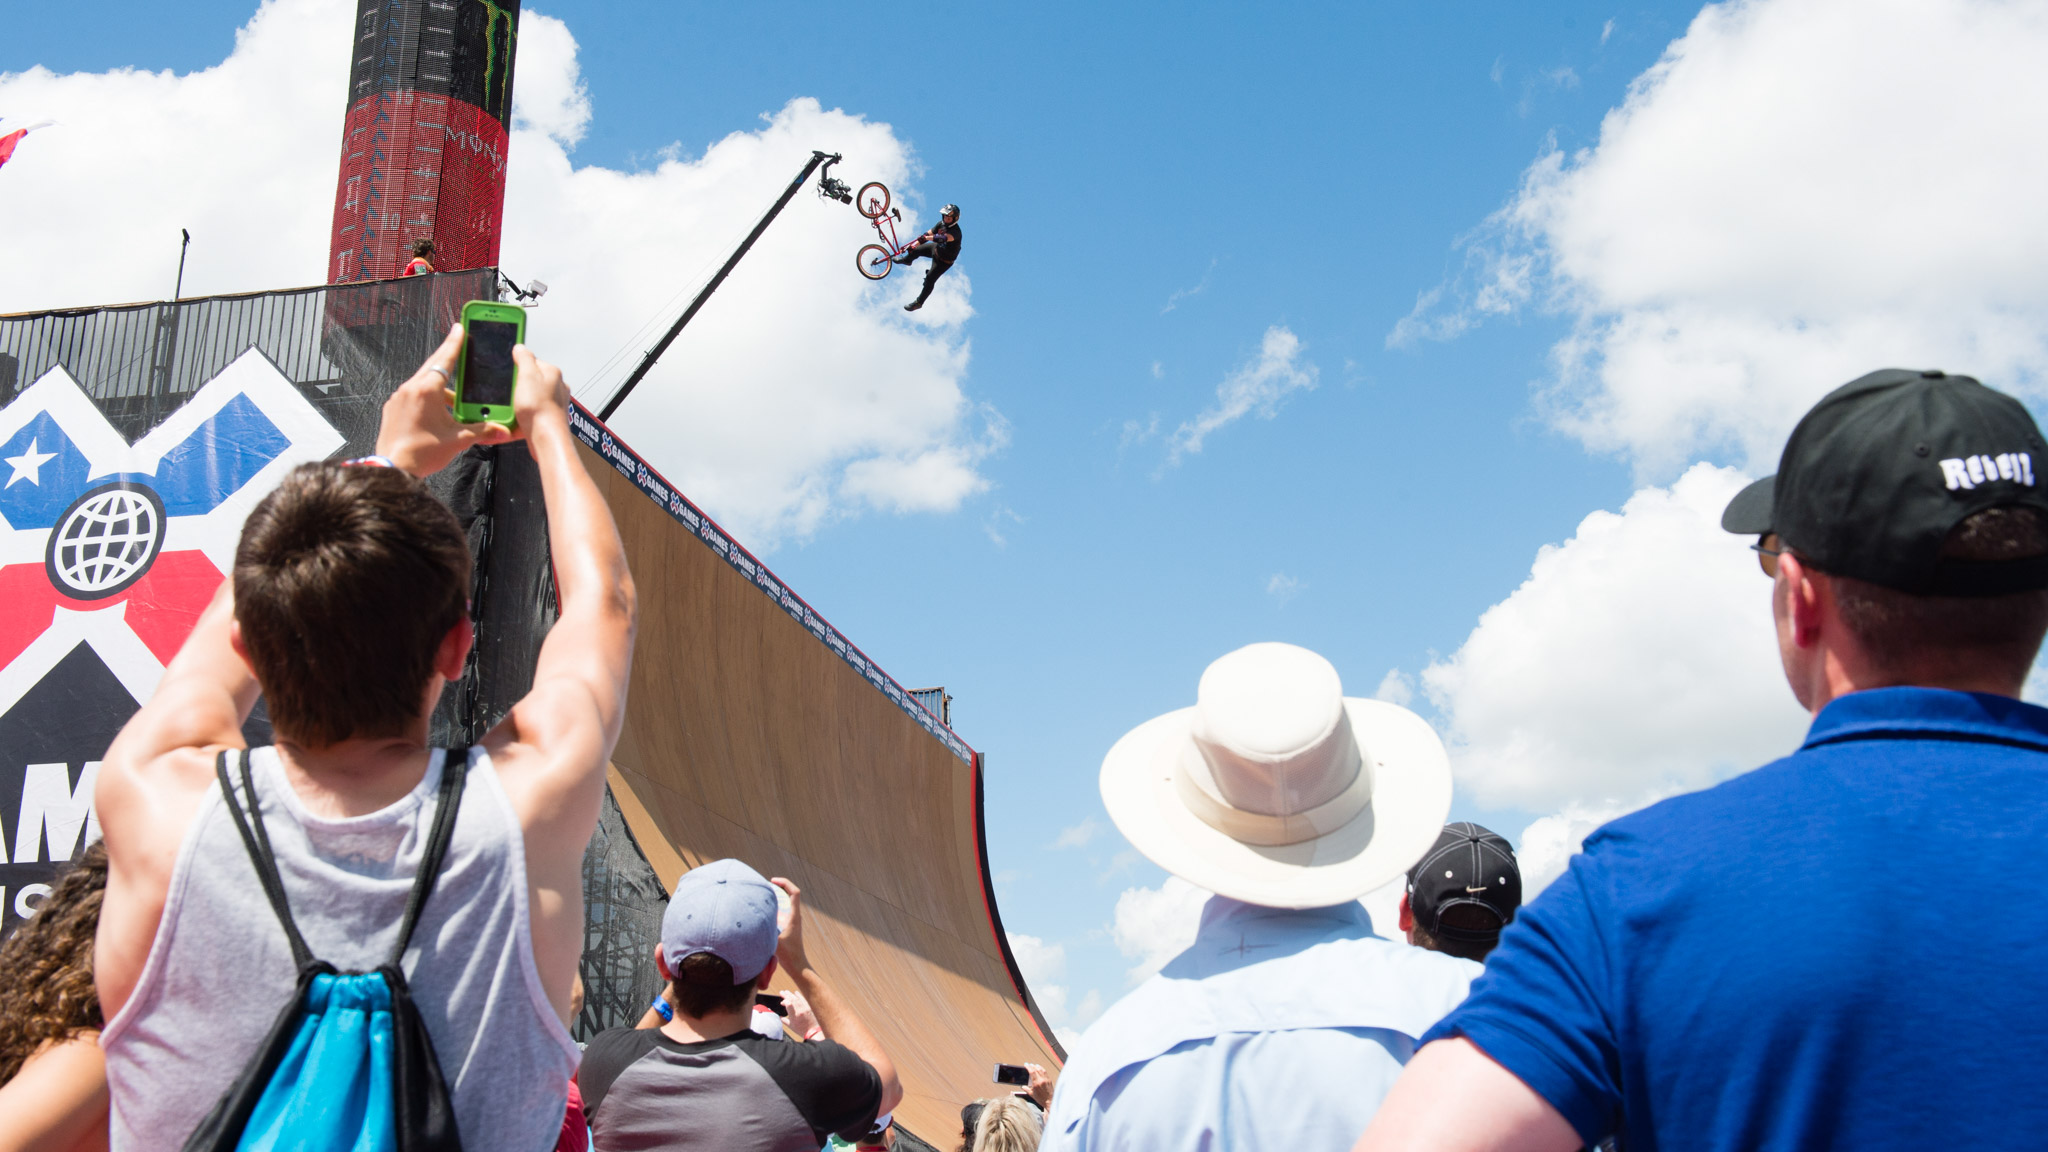 Skate/BMX Big Air Doubles, Sunday at 11 a.m.